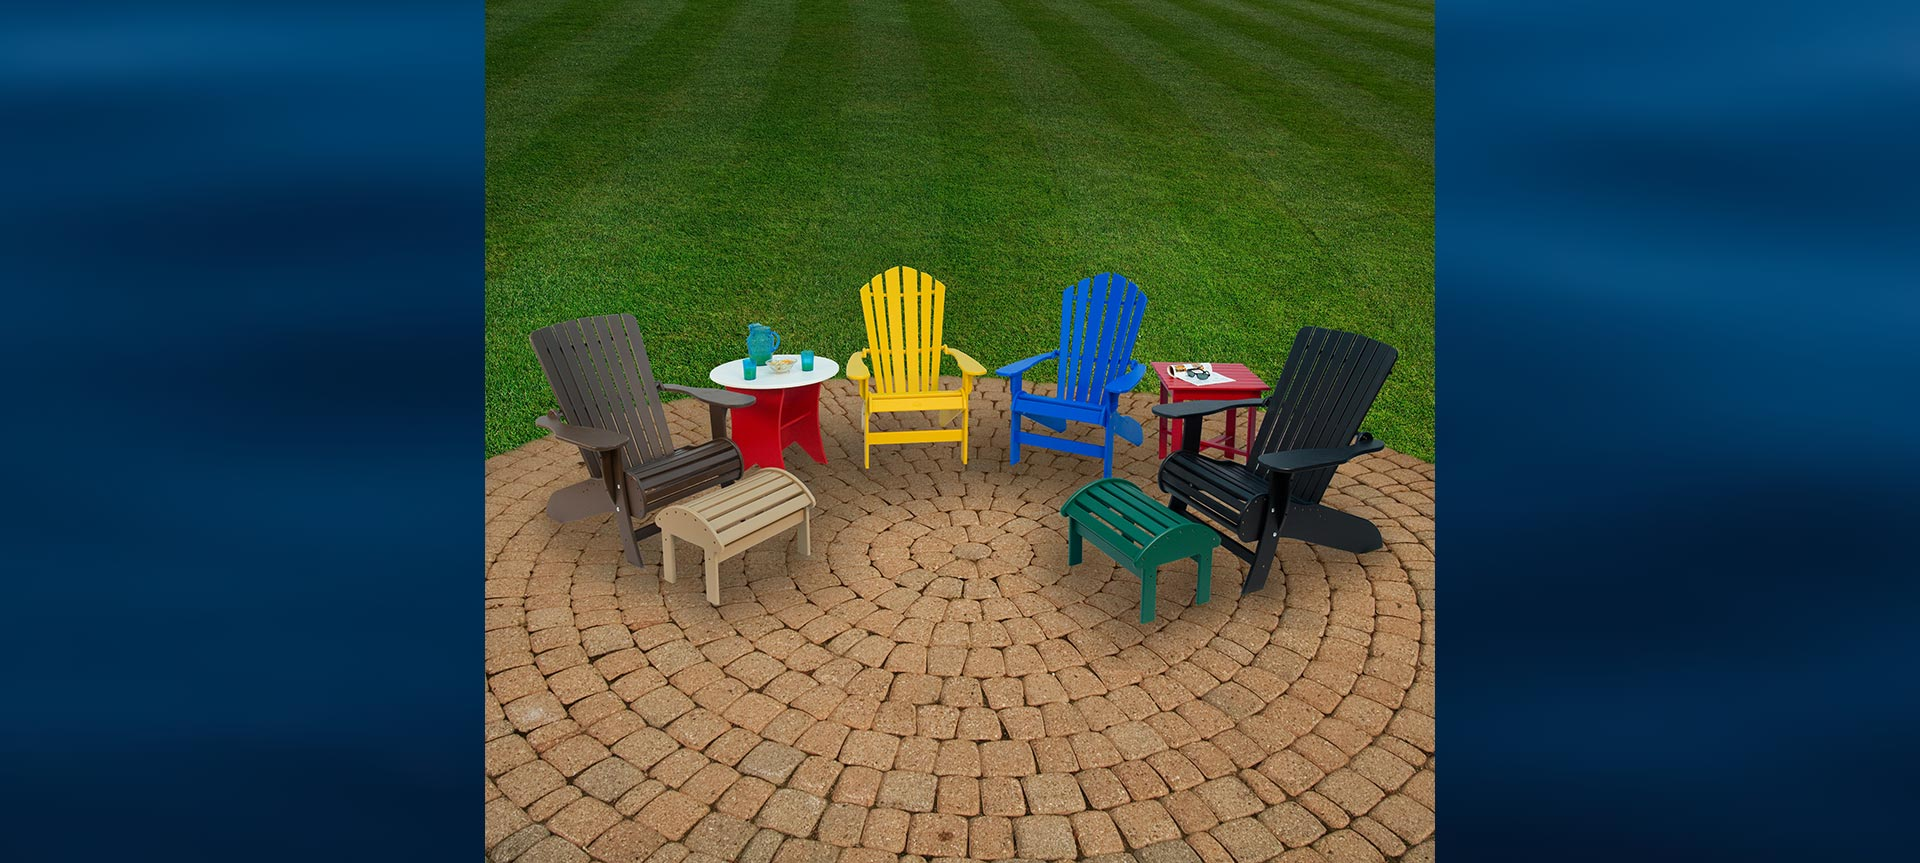 Beaver Springs outdoor plastic furniture in many colors